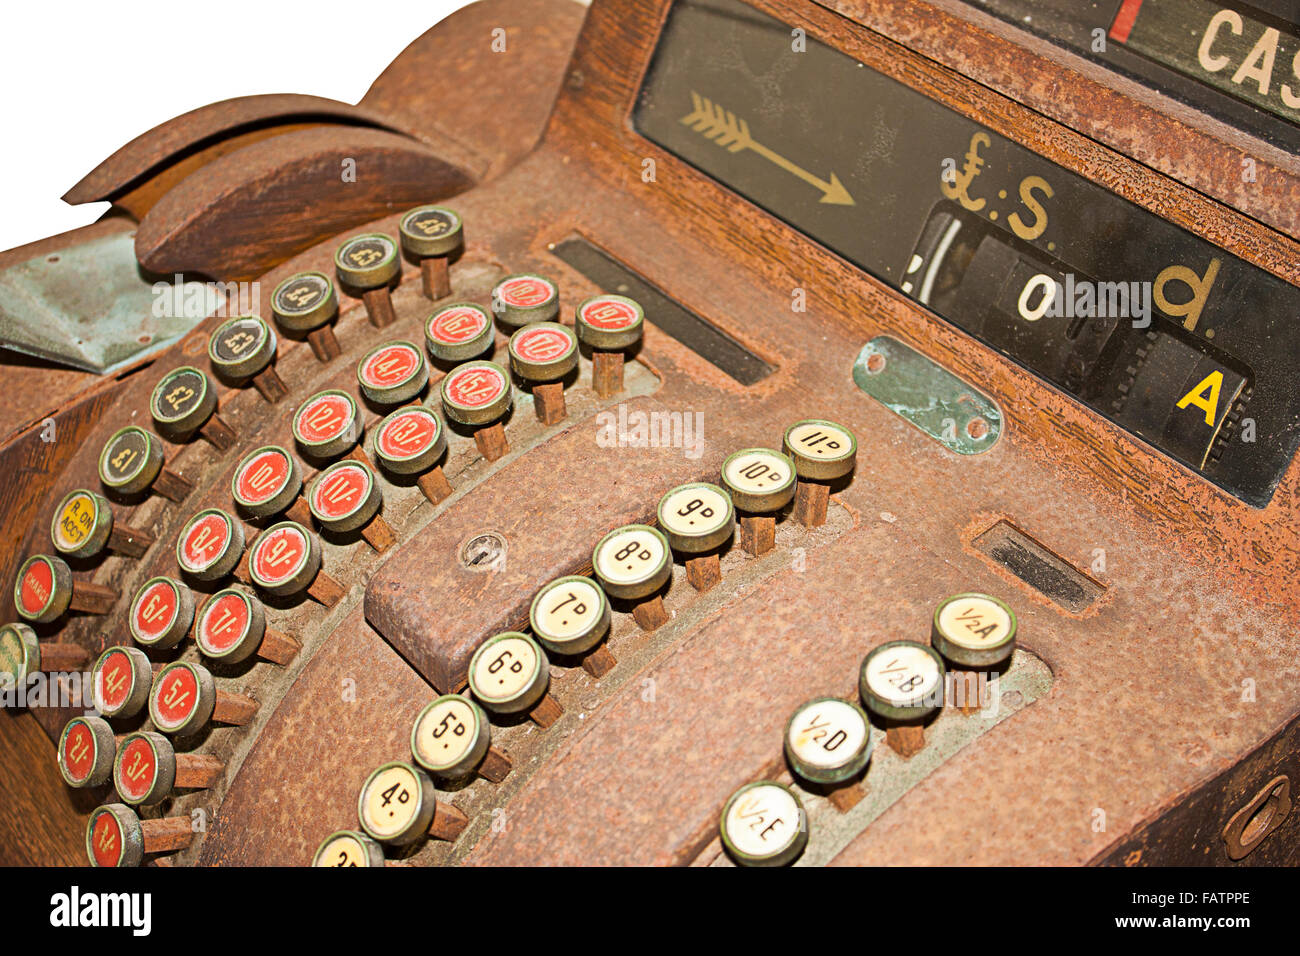 an old cash register on a white background - Stock Image